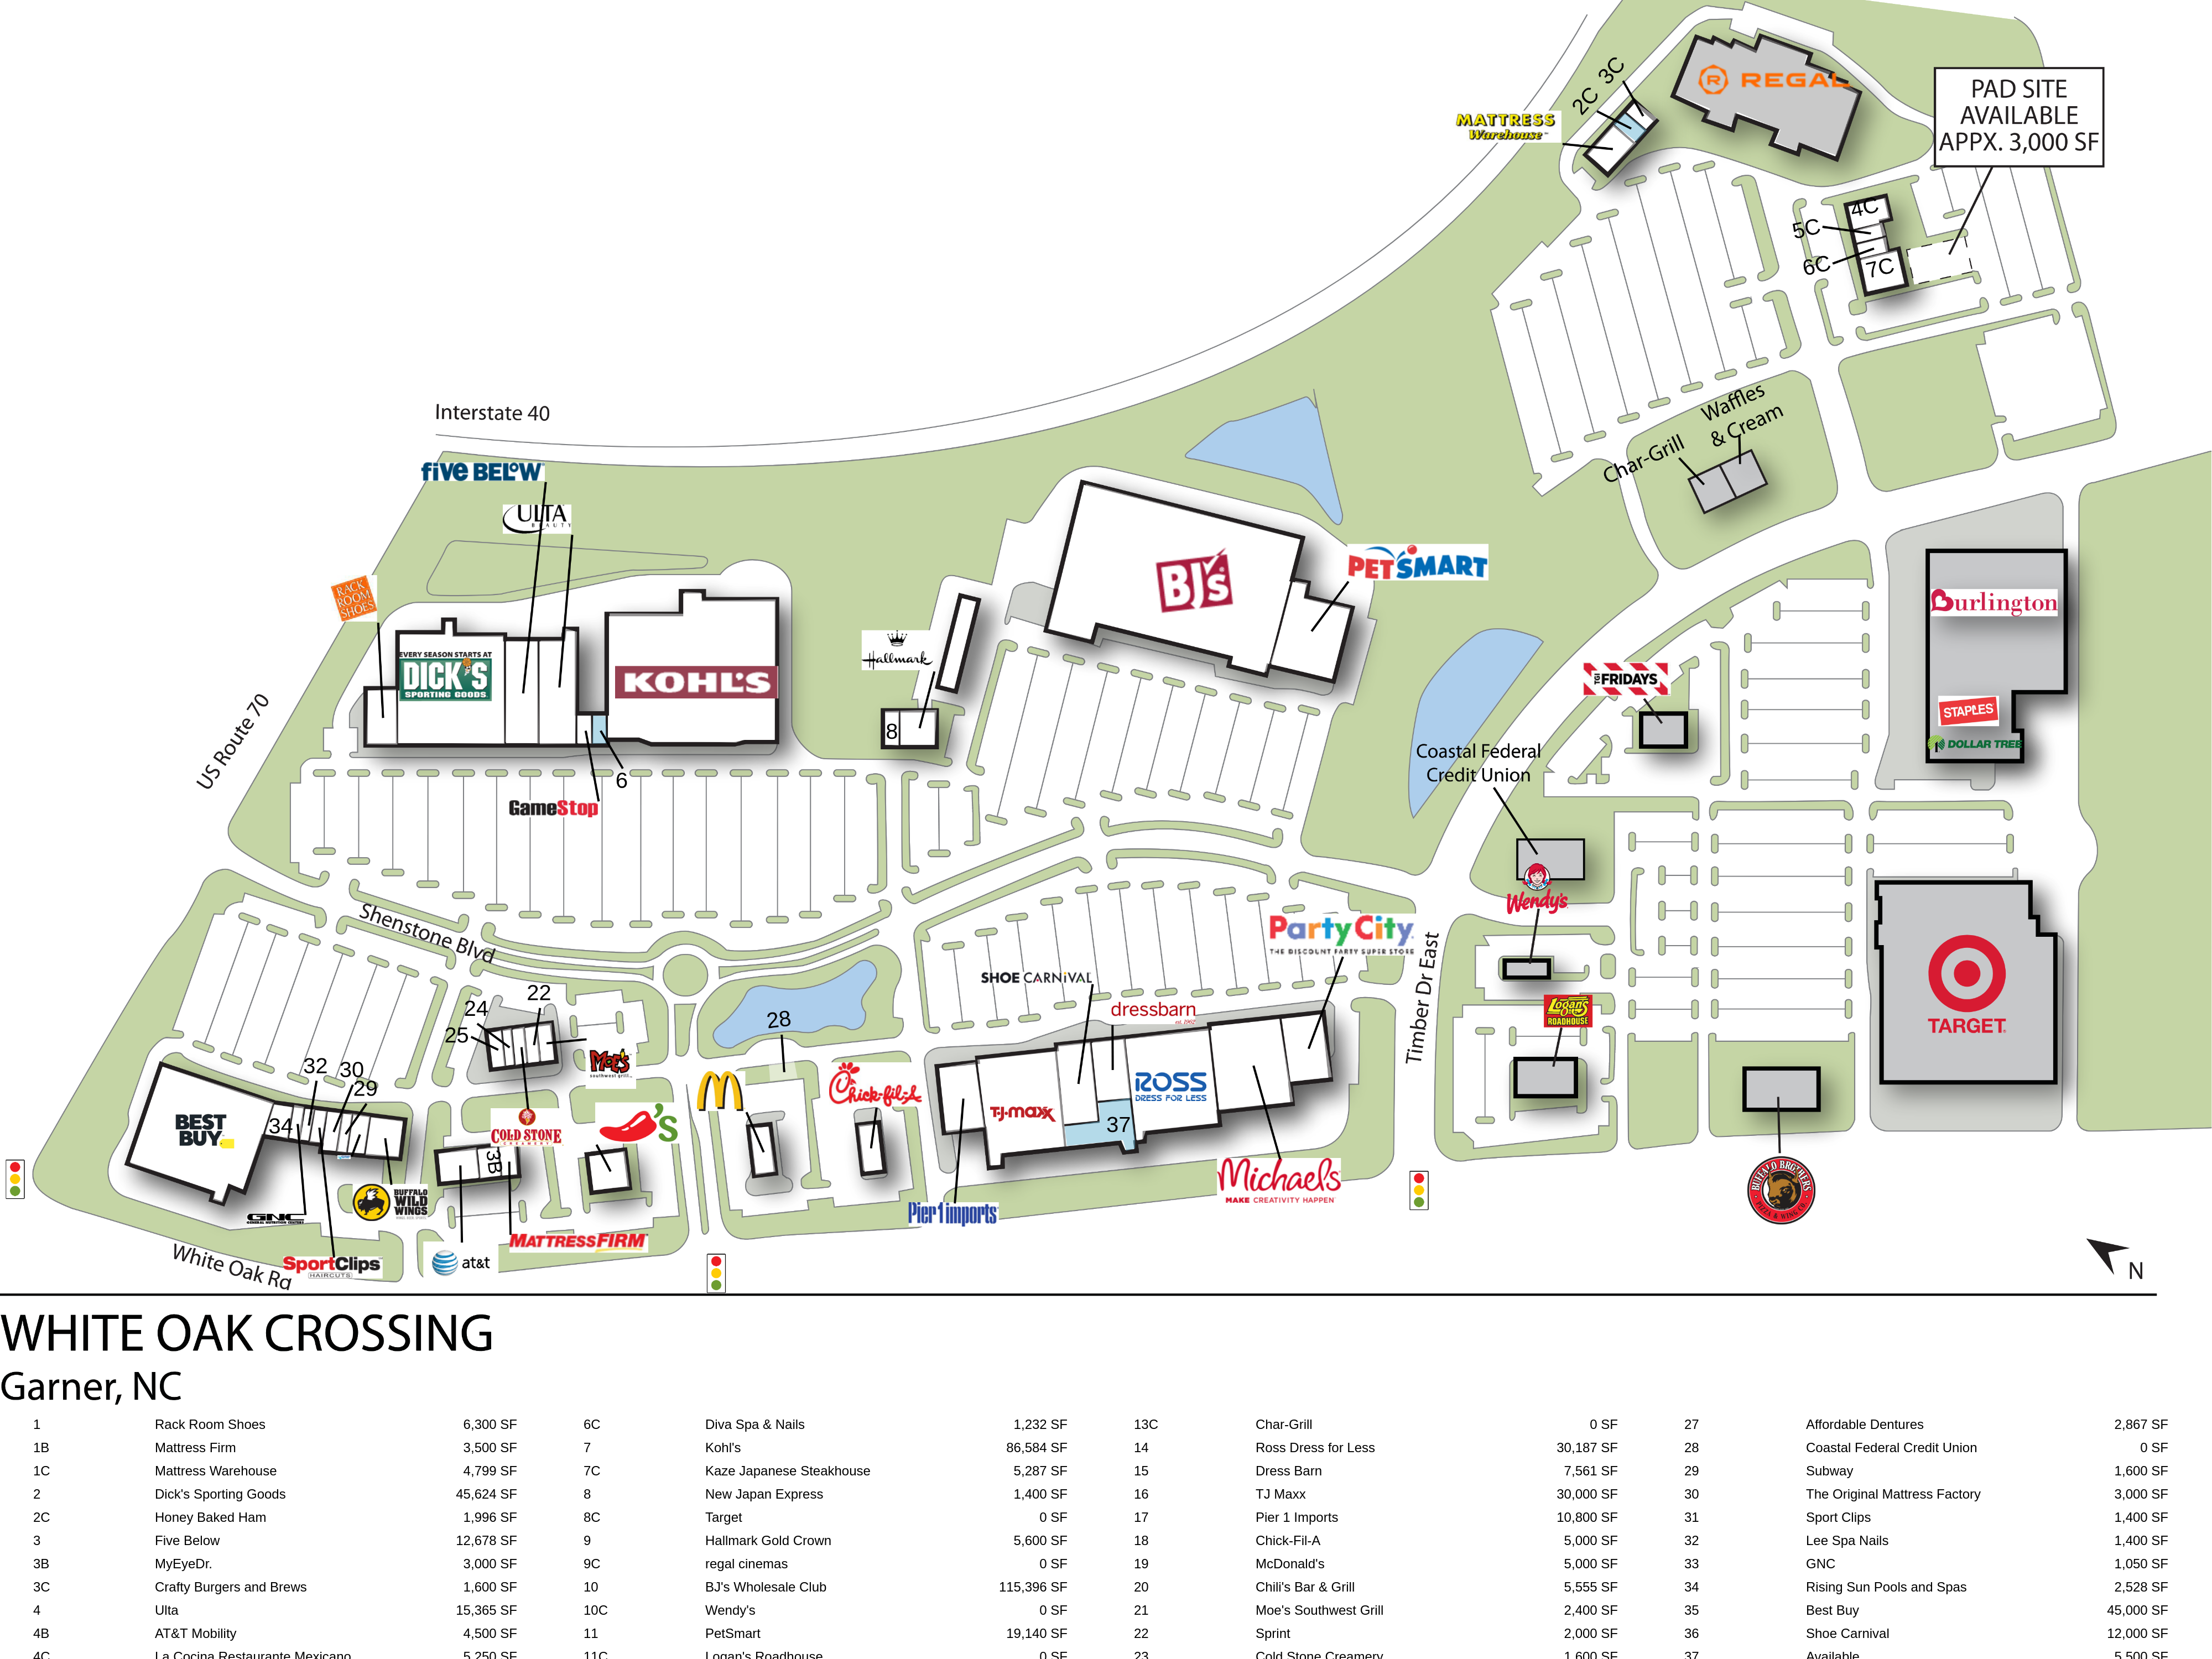 garner nc white oak crossing retail space inventrust static map legend